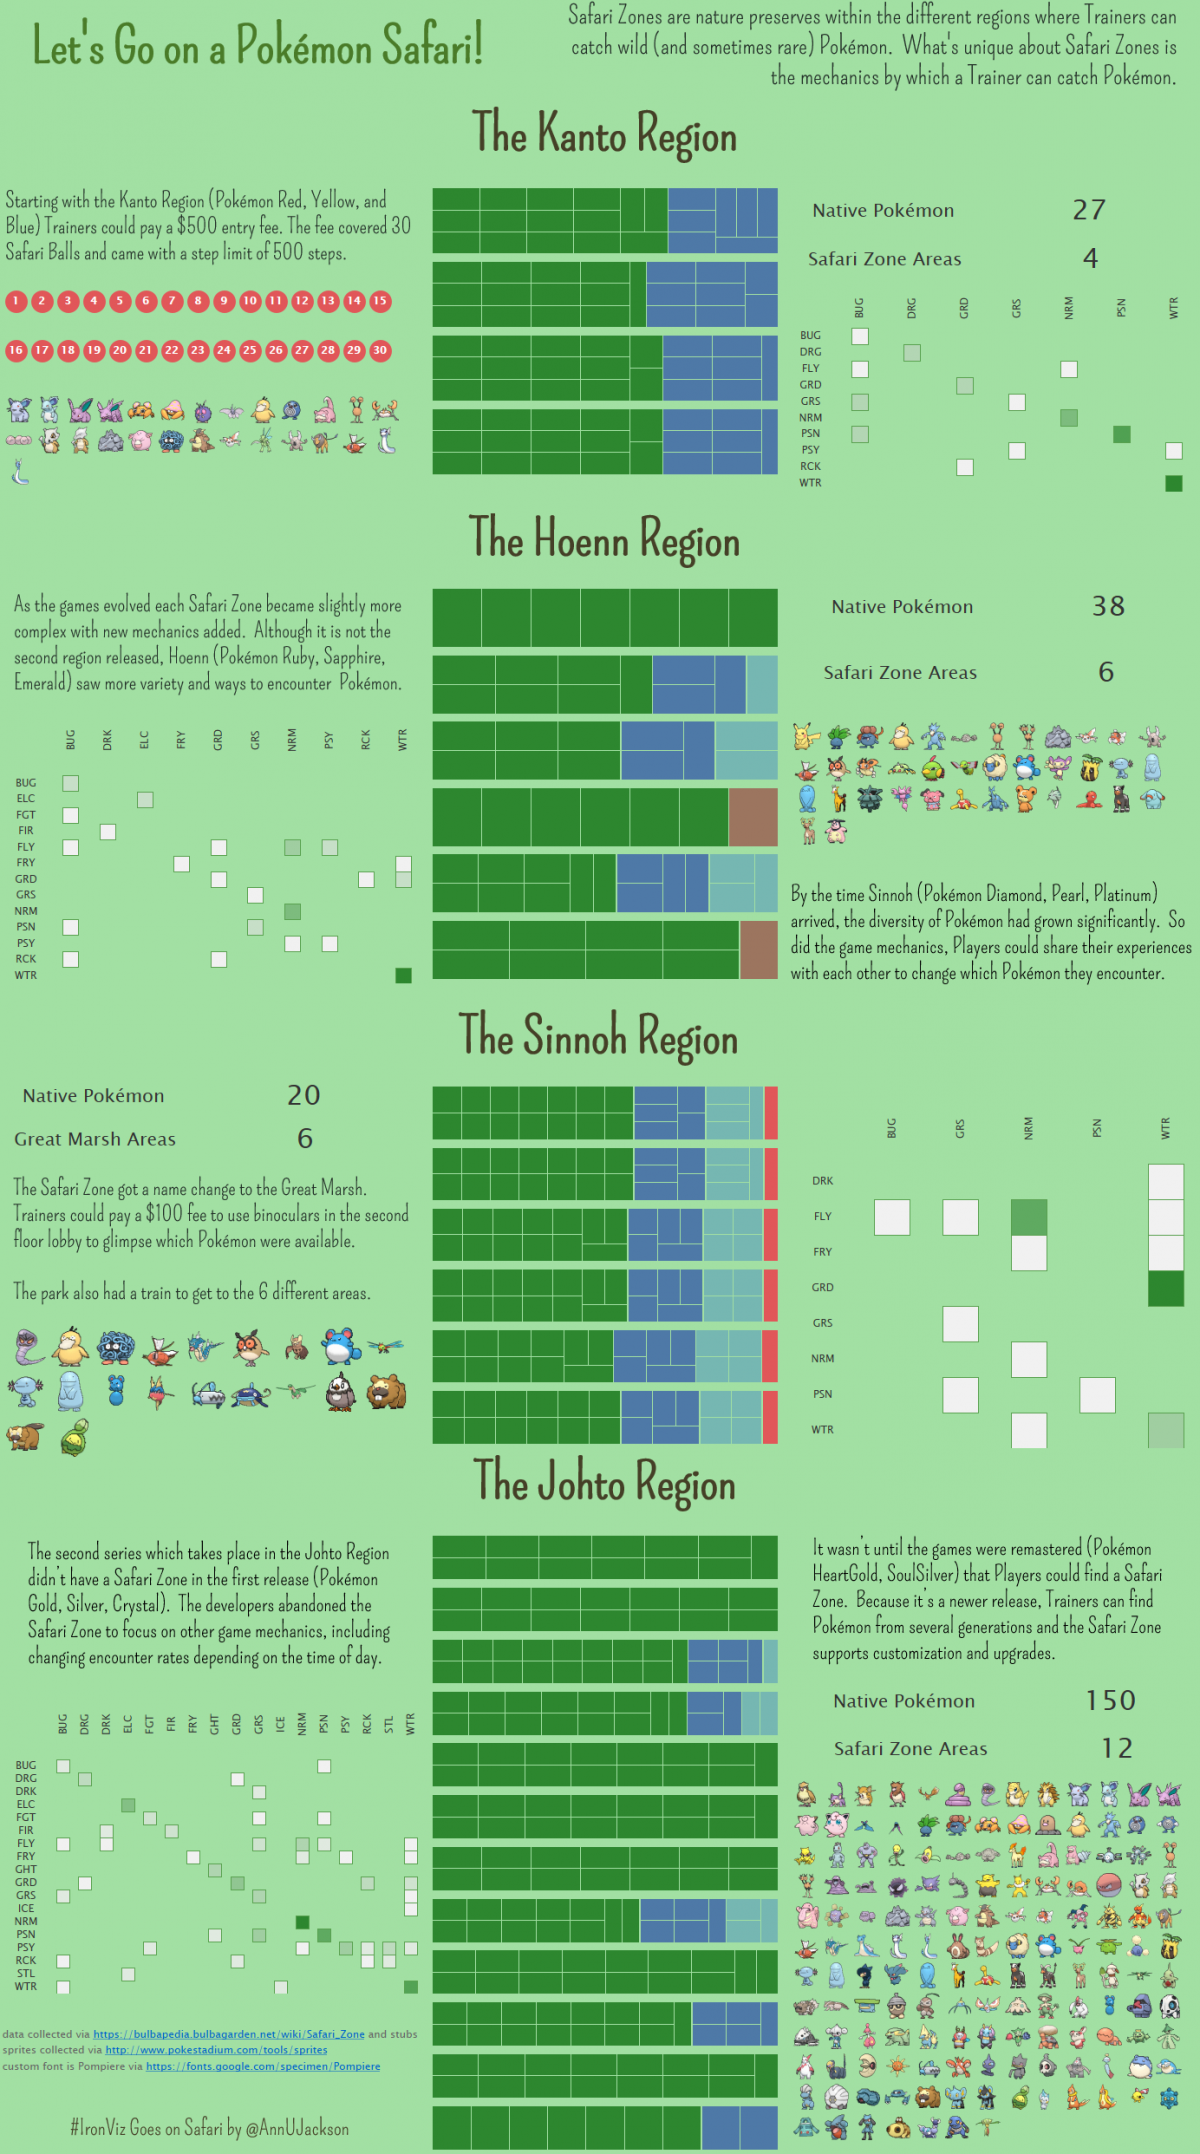 #IronViz – Let's Go on a Pokémon Safari!